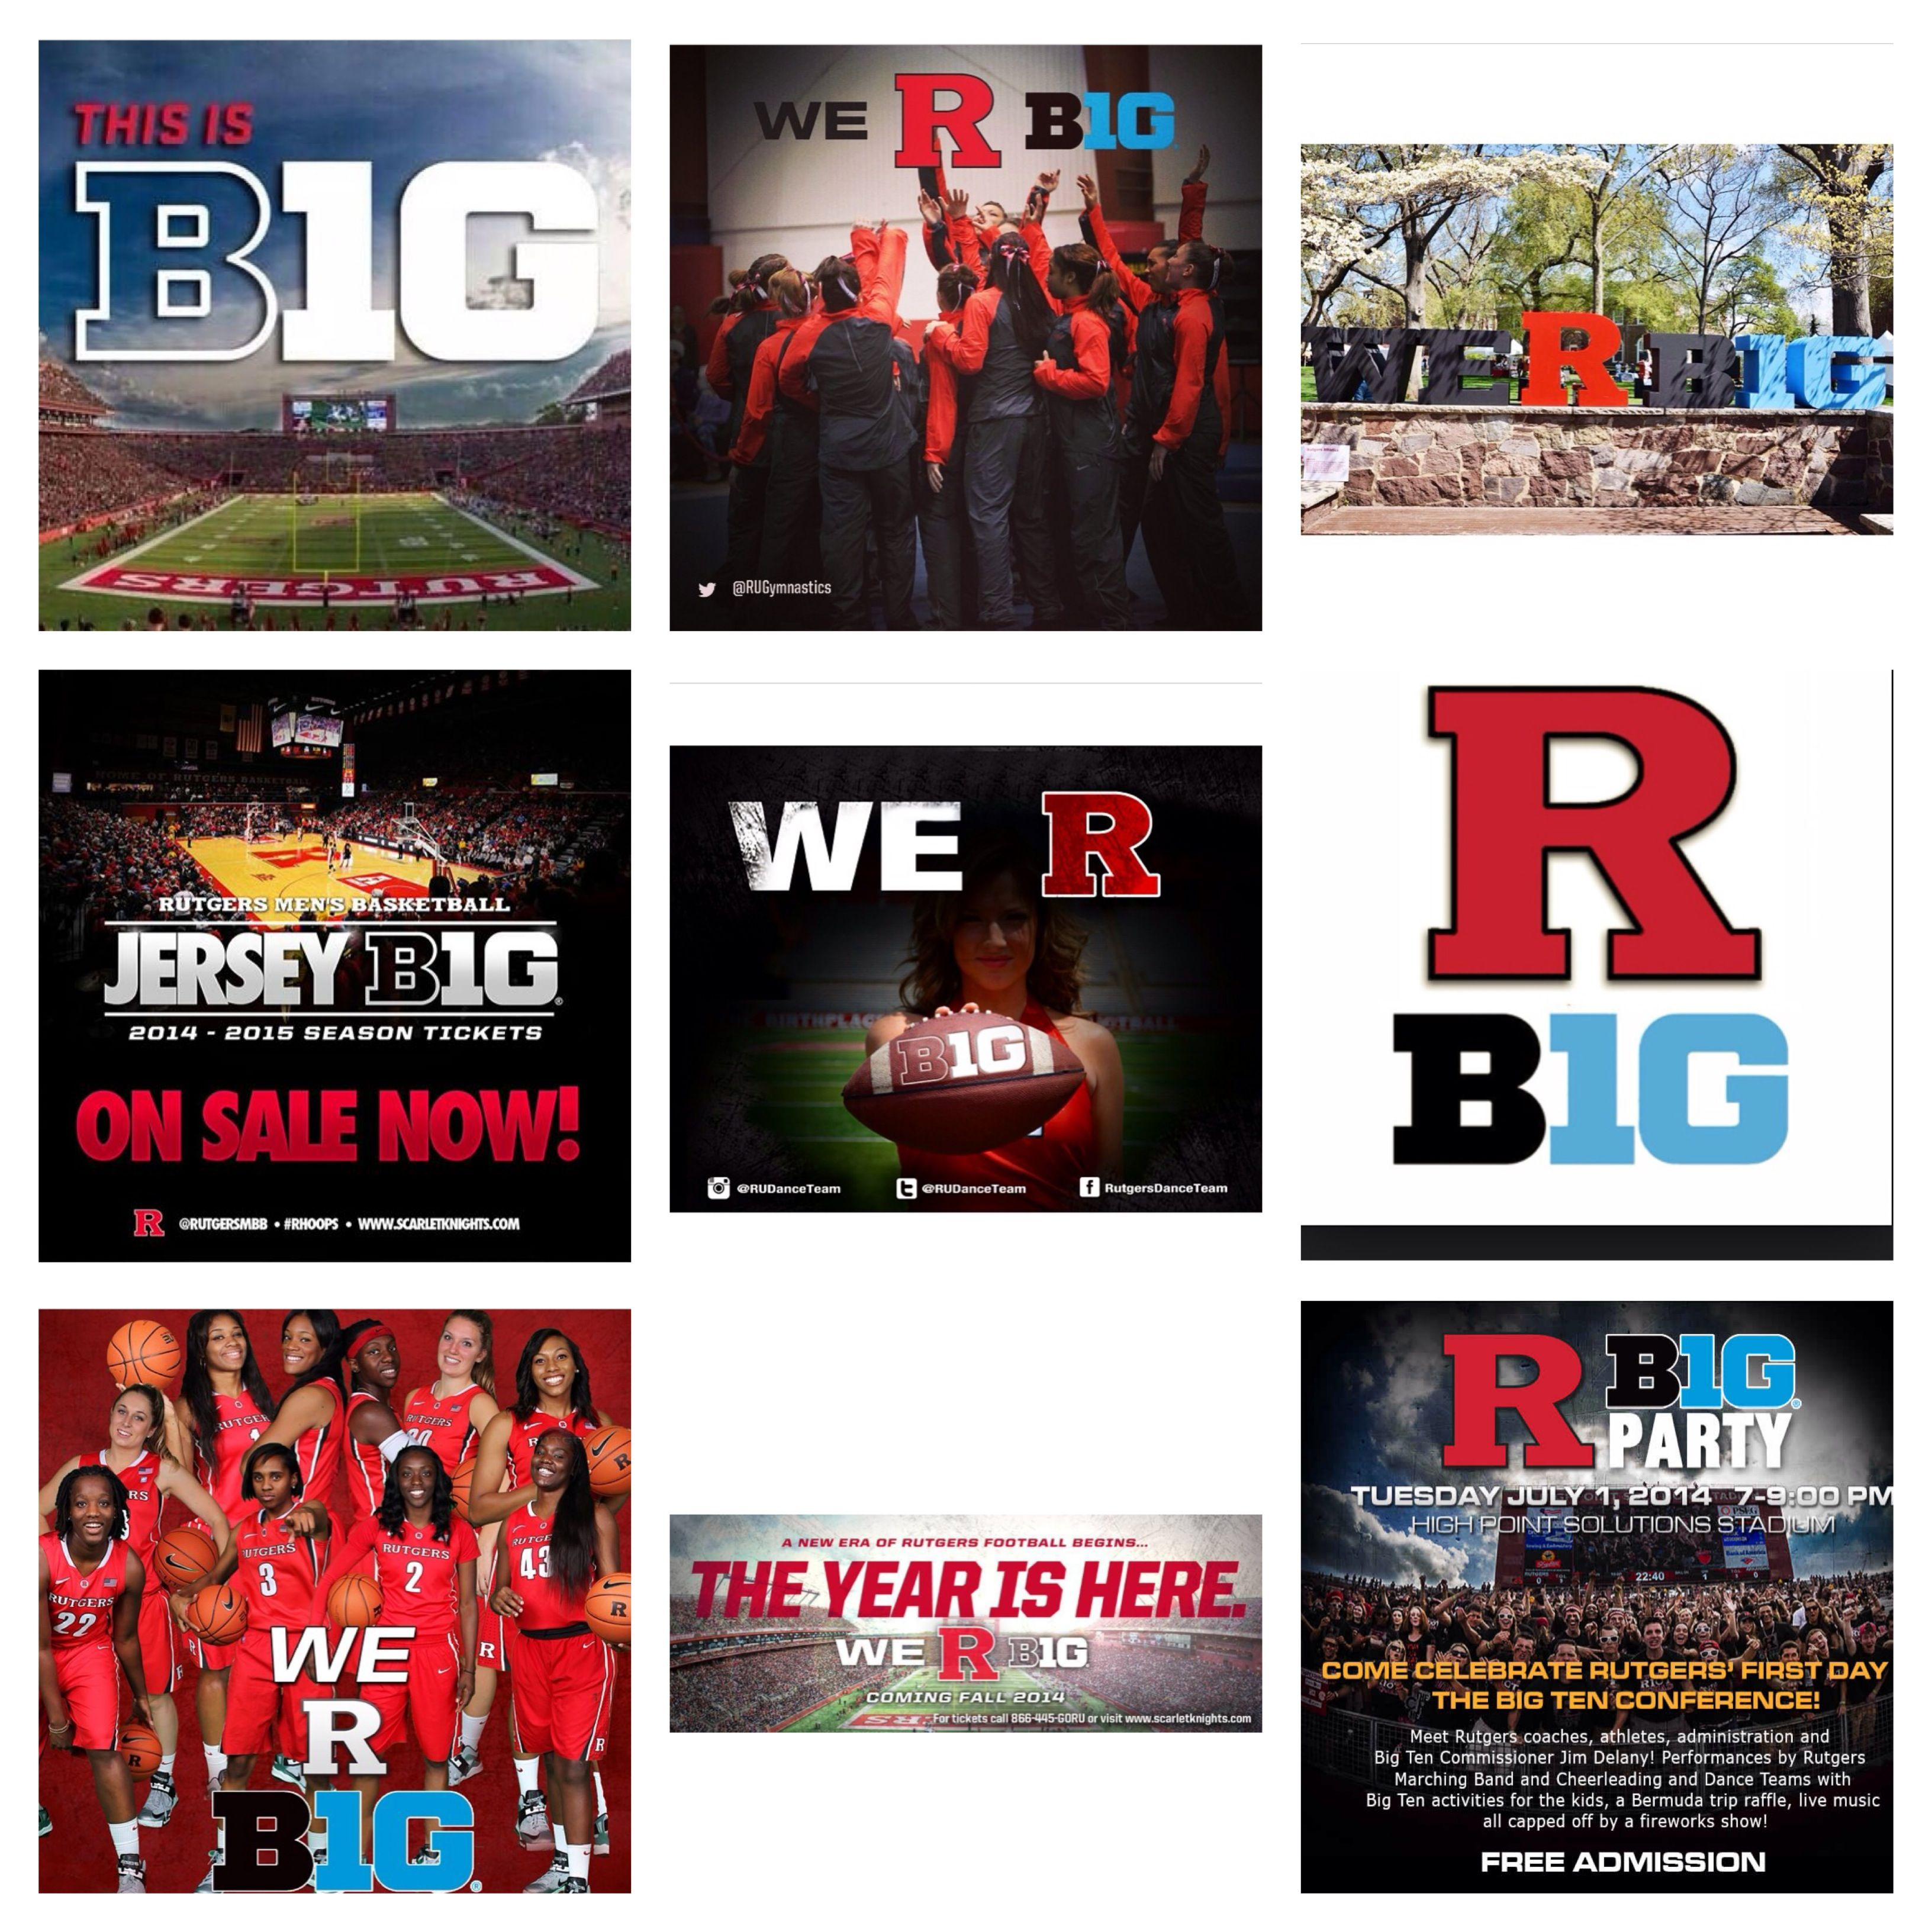 We R Loving All The B1g Posts Congrats To Everyone At Rutgers University For Officially Joining The Big Ten Conferen Rutgers University Big Ten Season Ticket